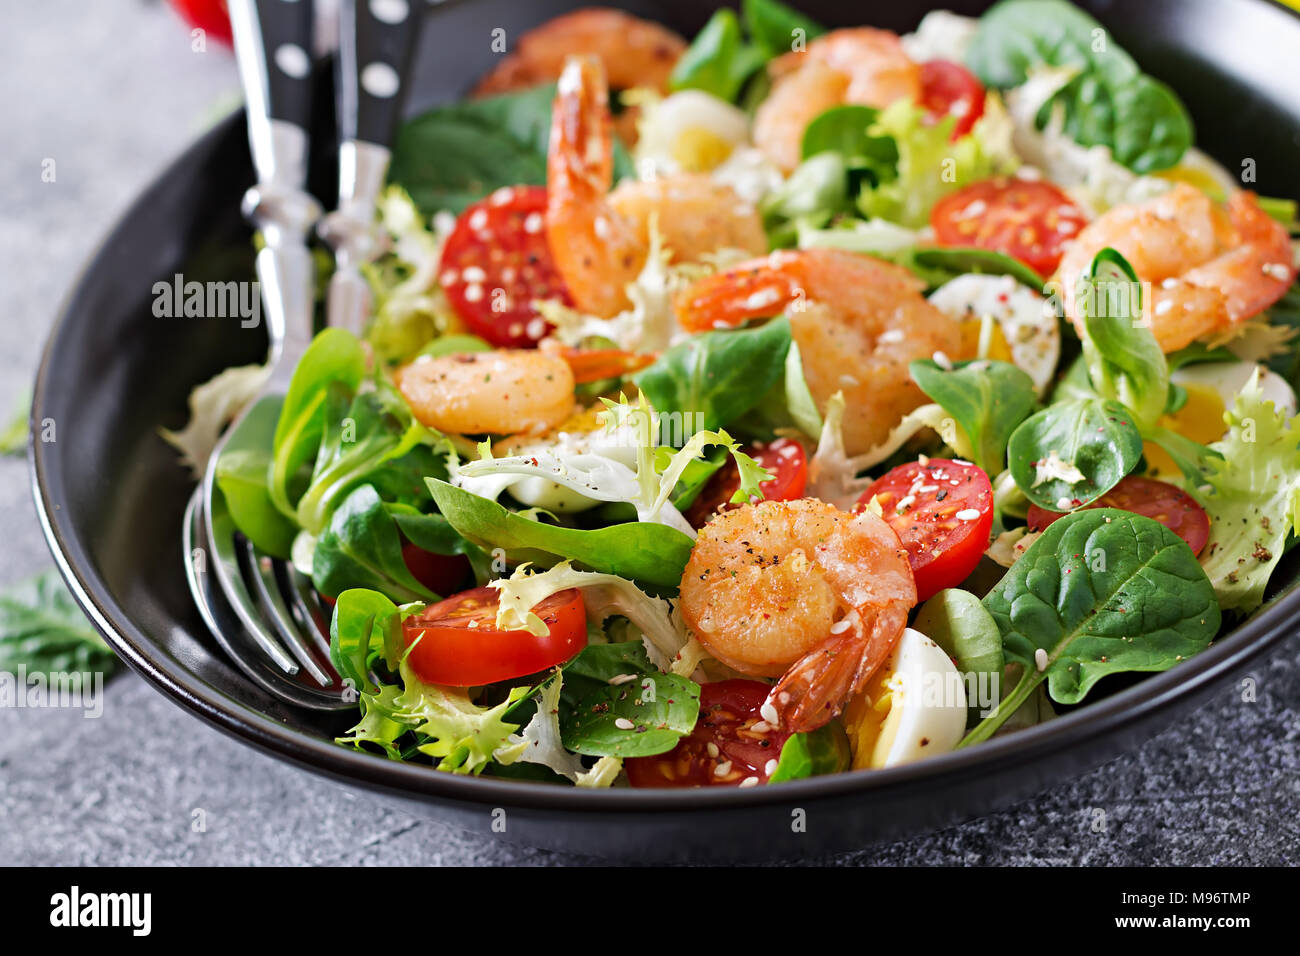 Healthy salad plate. Fresh seafood recipe. Grilled shrimps and fresh vegetable salad and egg. Grilled prawns. Healthy food. - Stock Image